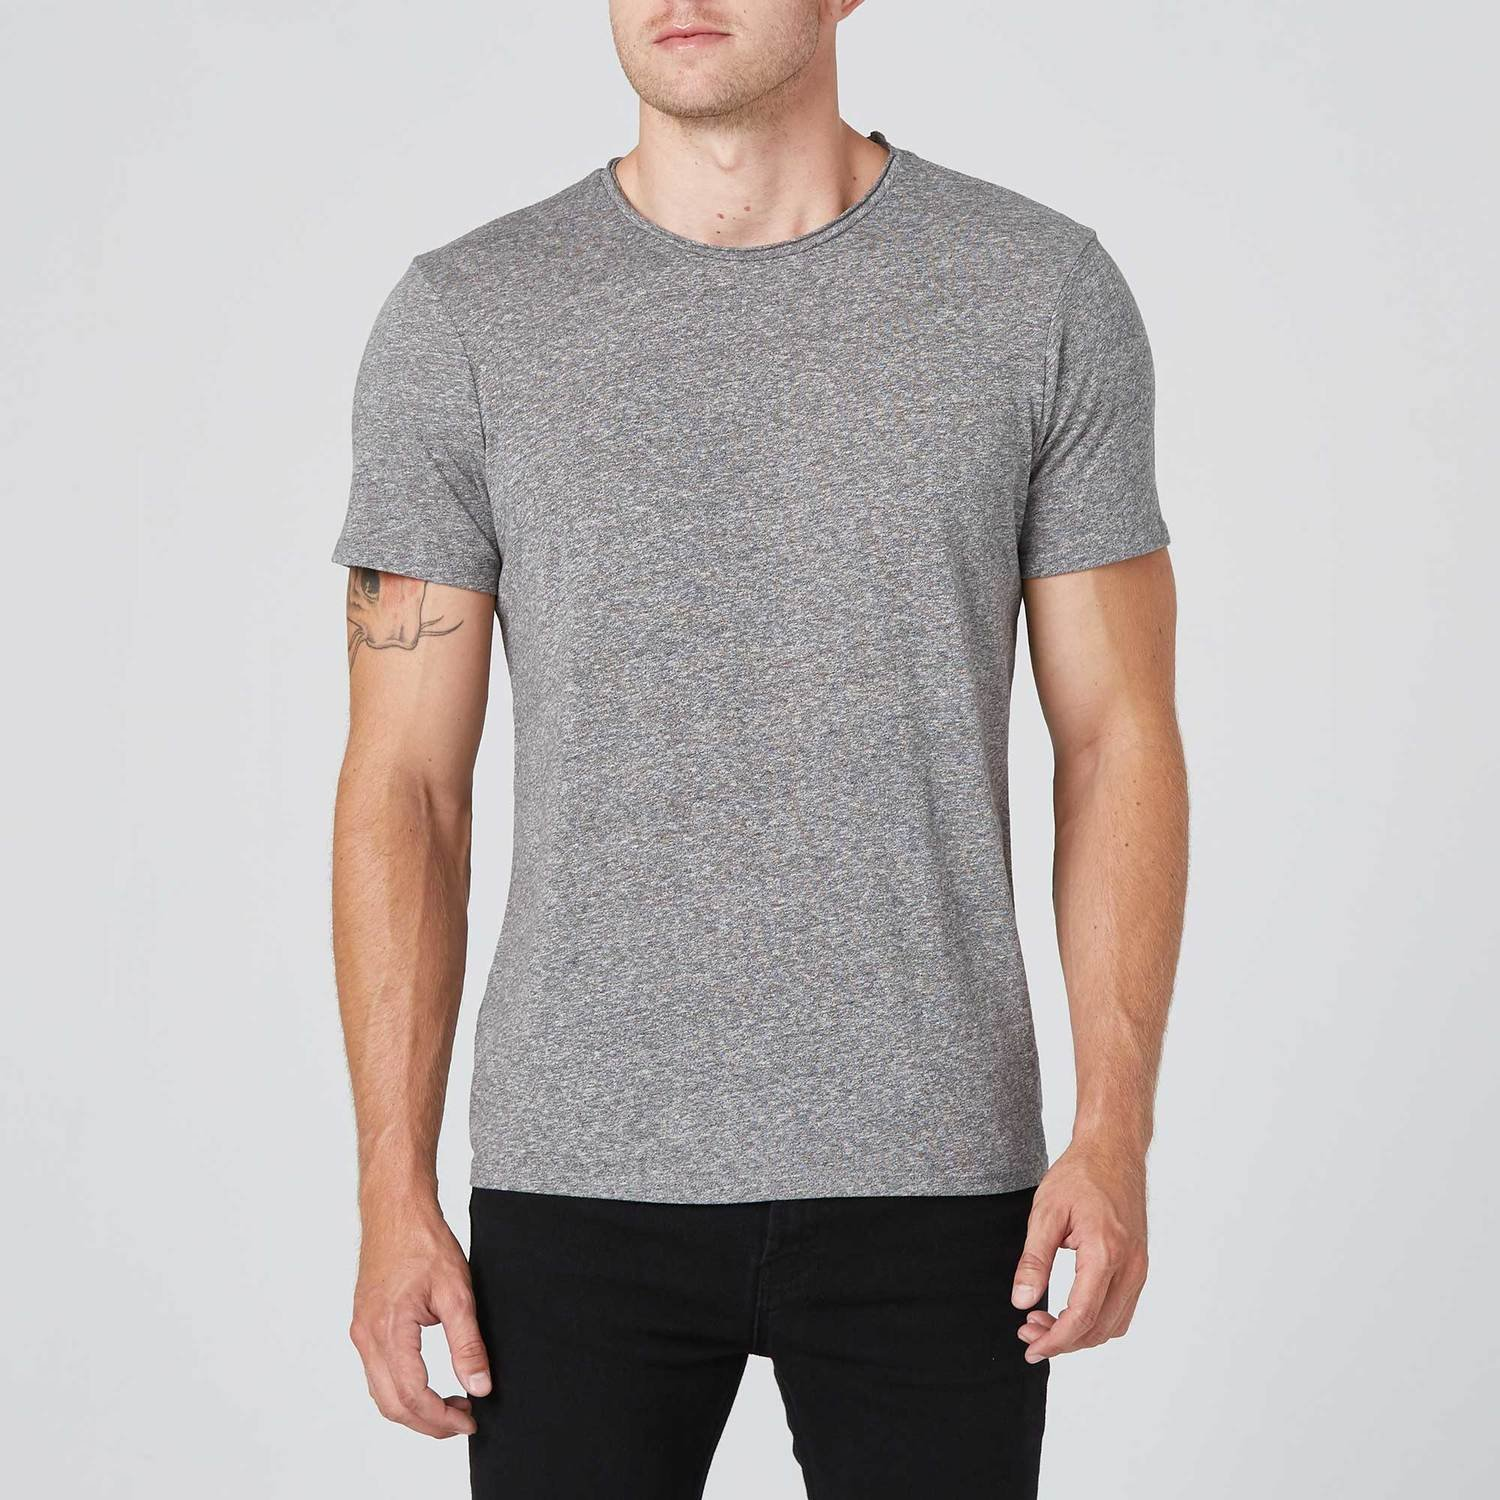 Modern Crew Neck Tee in Heather Grey